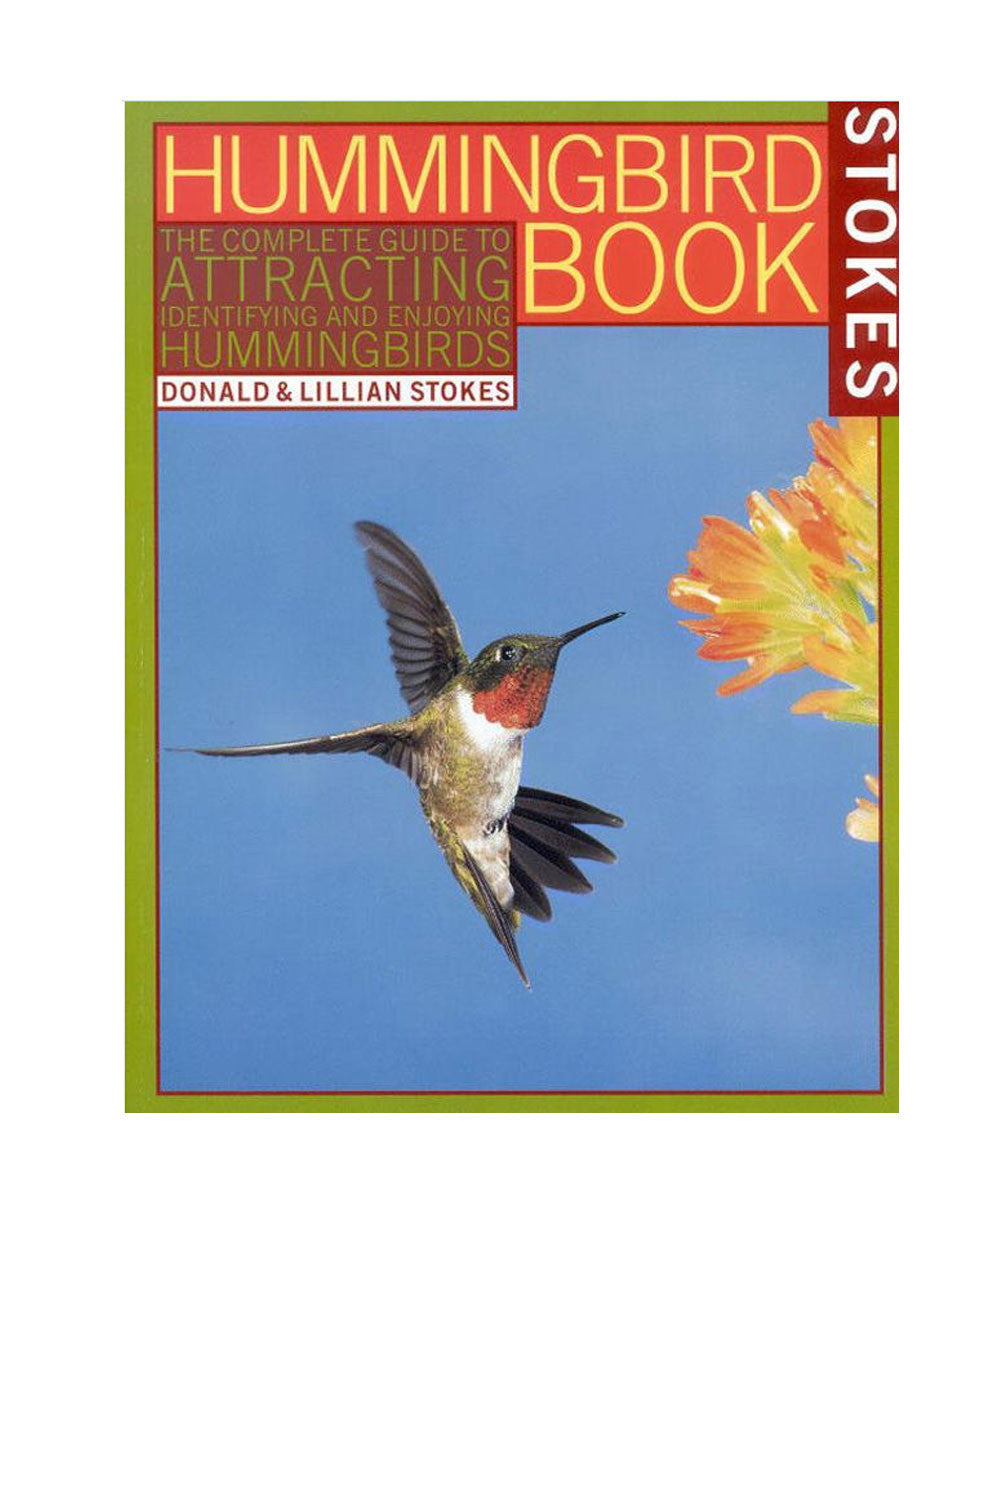 Beginners Guide to Hummingbirds Book - We Love Hummingbirds